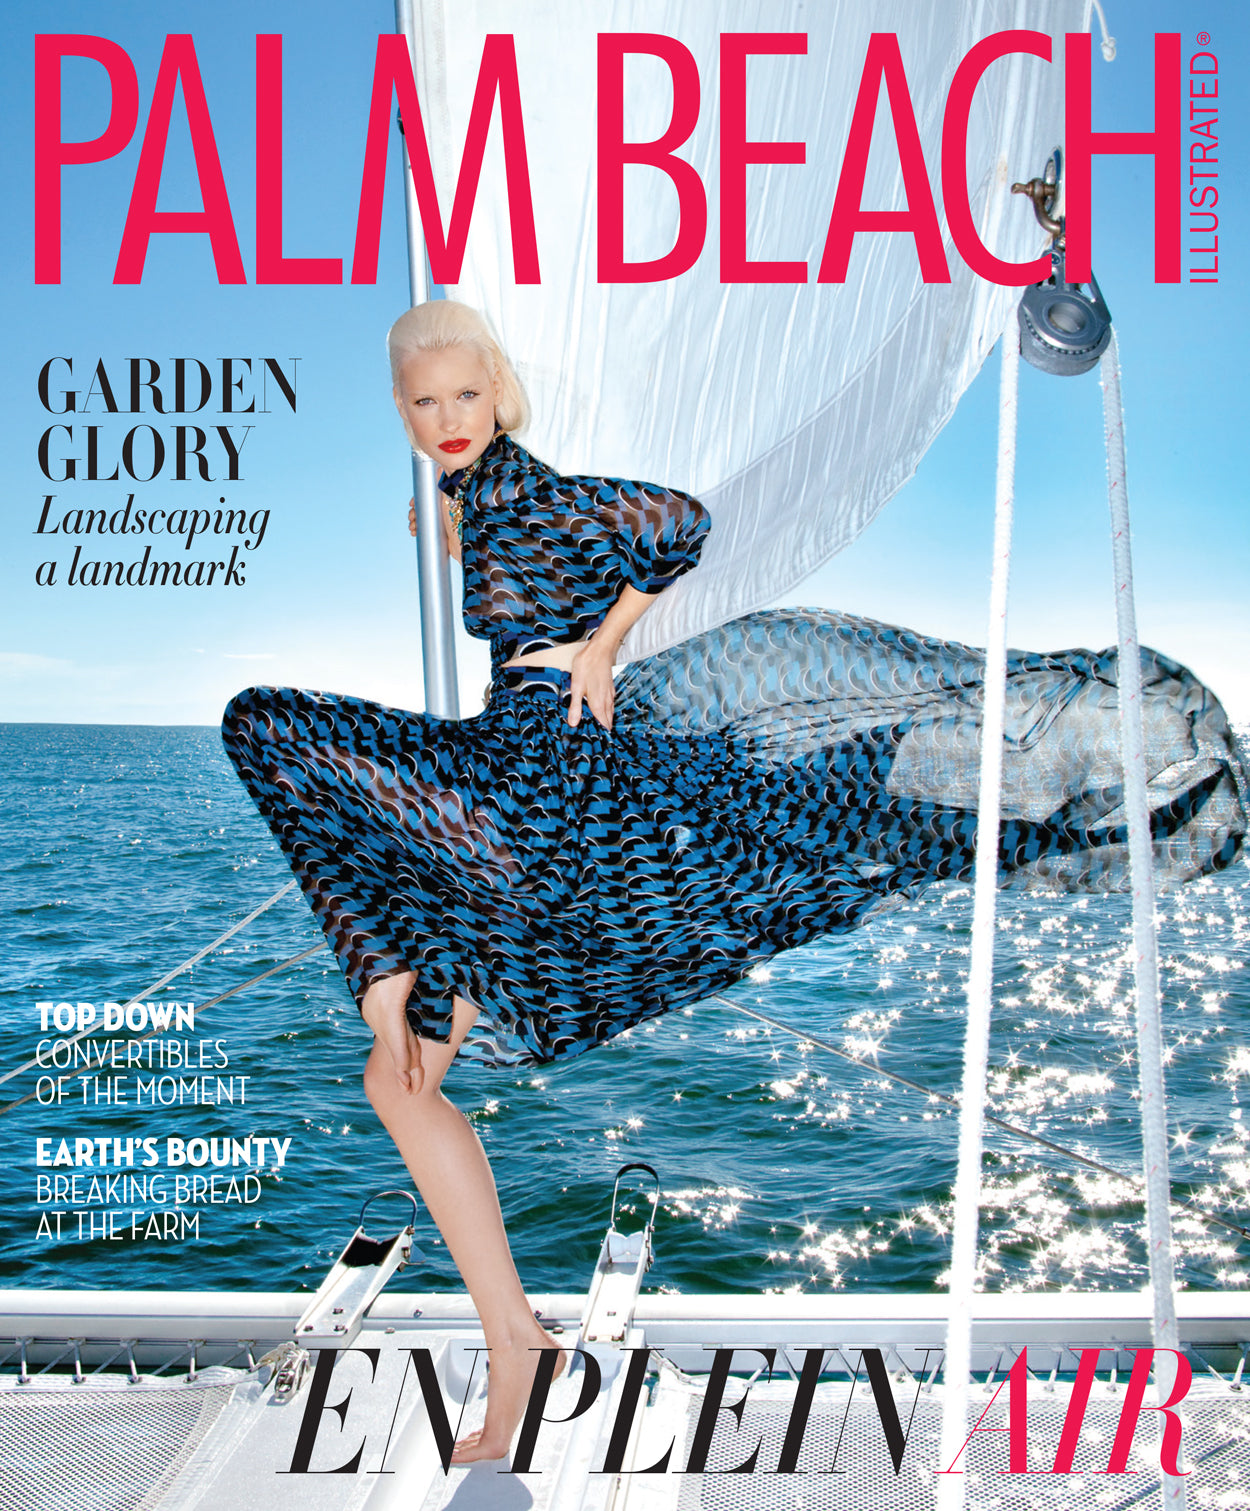 Palm Beach Illustrated February 2016 Cover